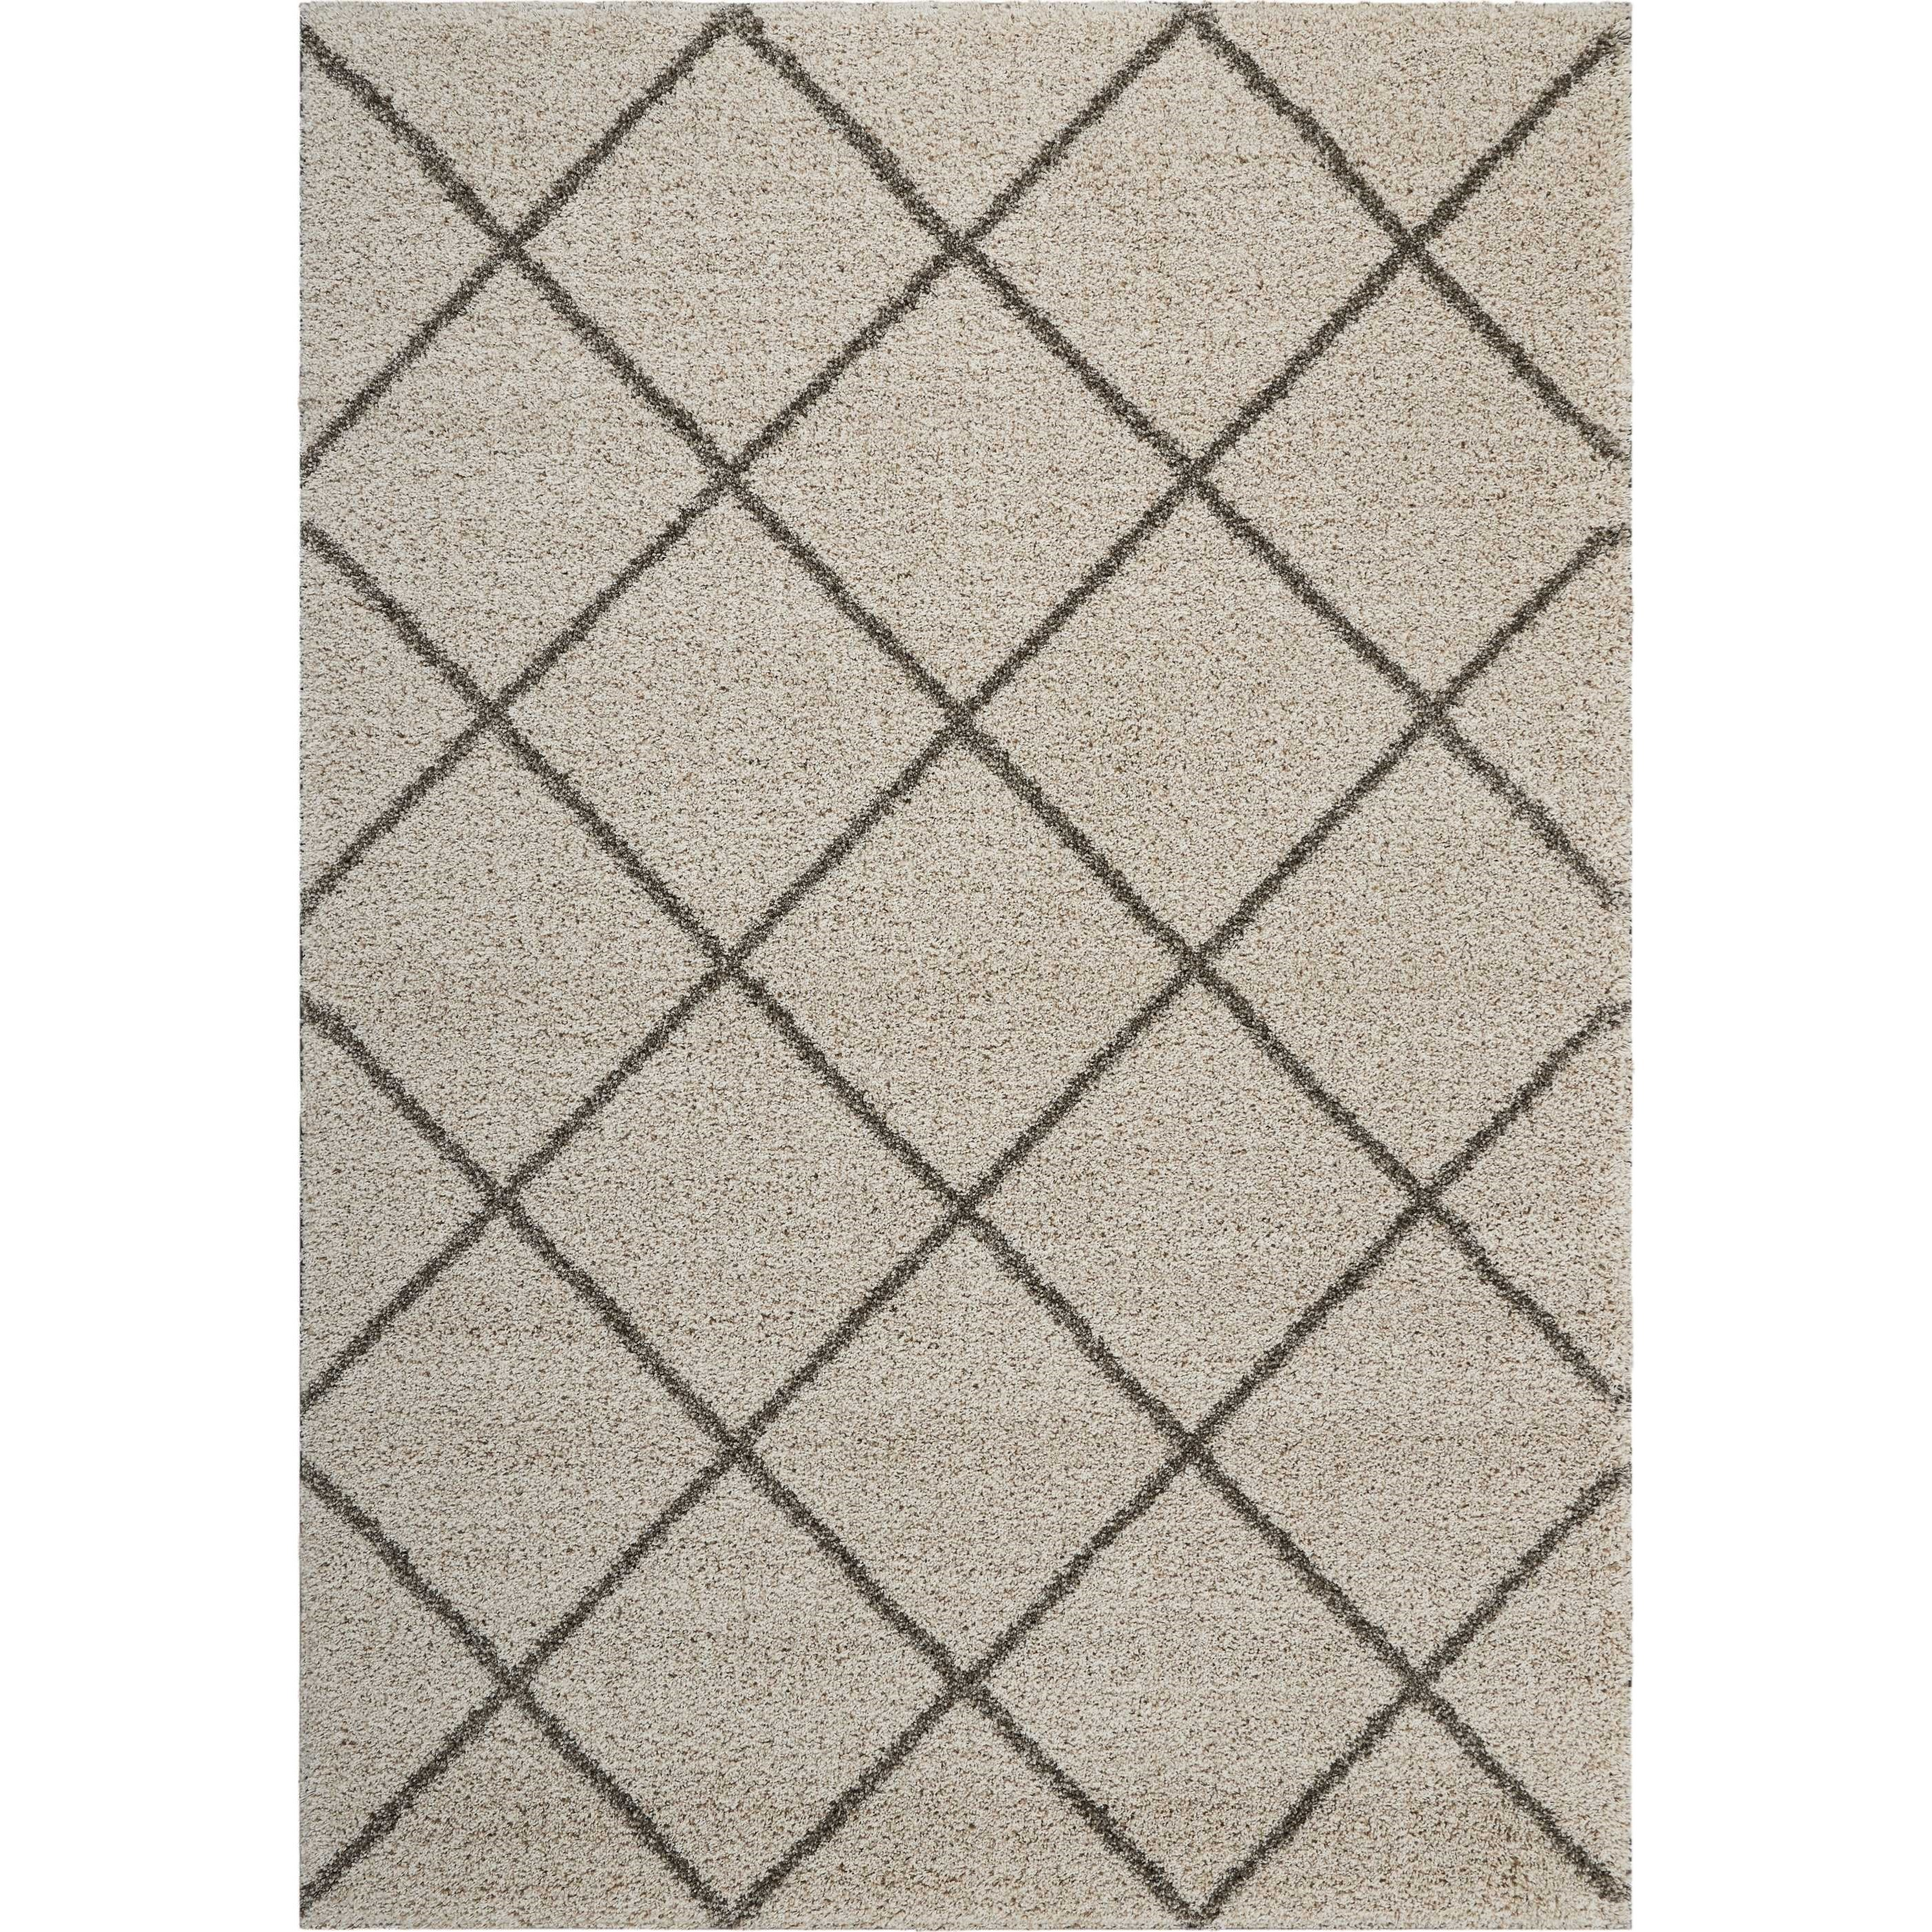 "Brisbane 6'7"" X 9'7"" Cream Rug by Nourison at Home Collections Furniture"